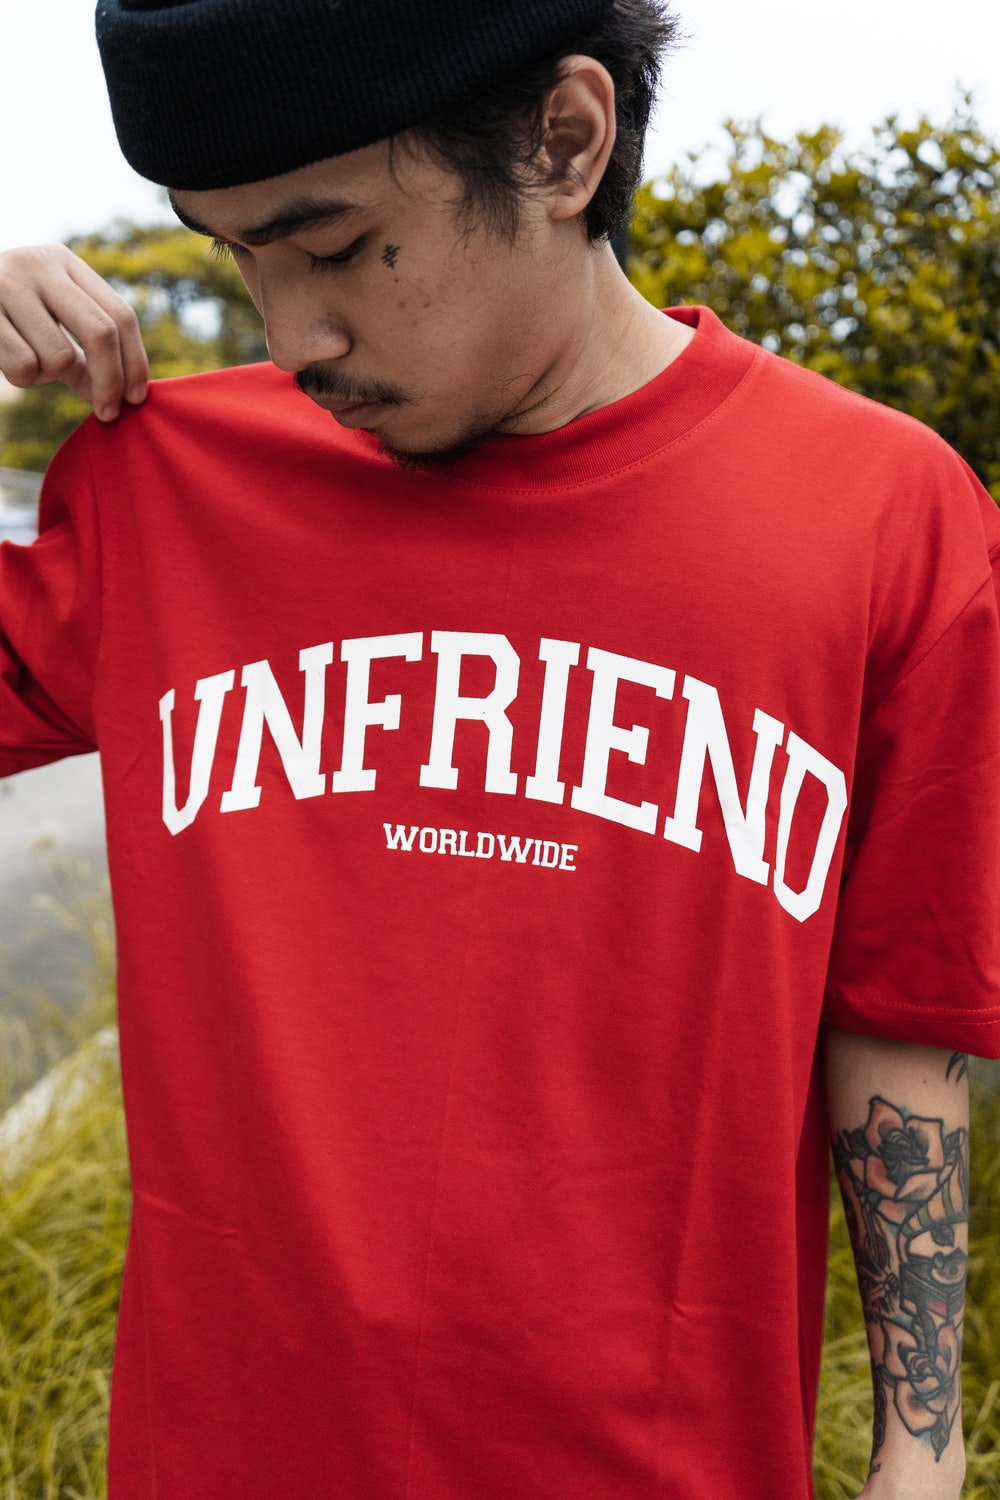 man in red and white crew neck t-shirt